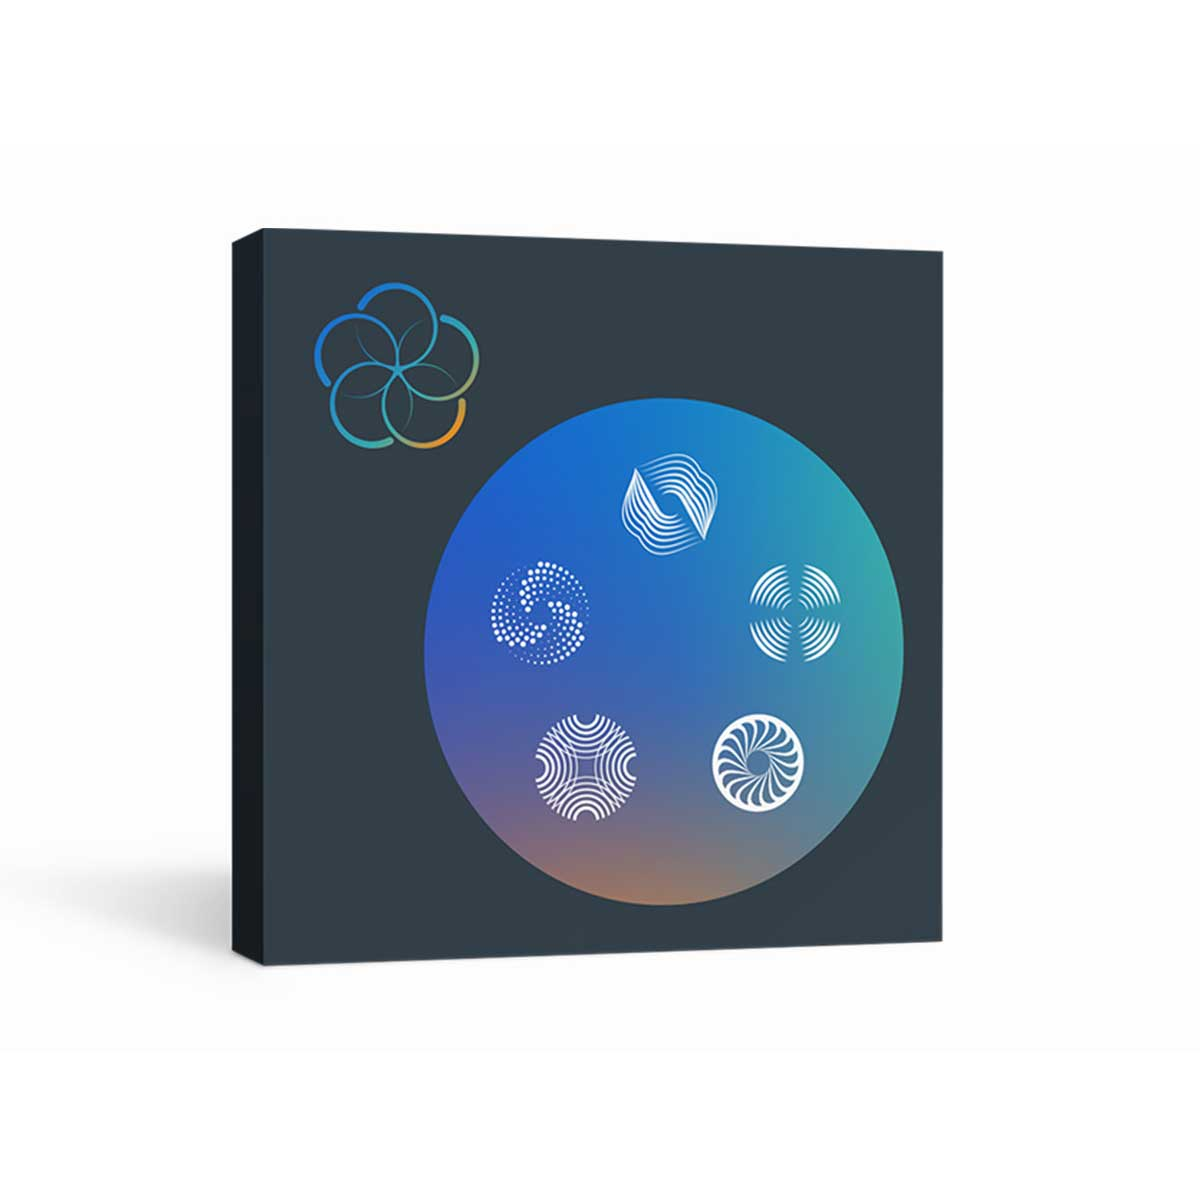 iZotope RX Post Production Suite 5 Next-generation tools for post production